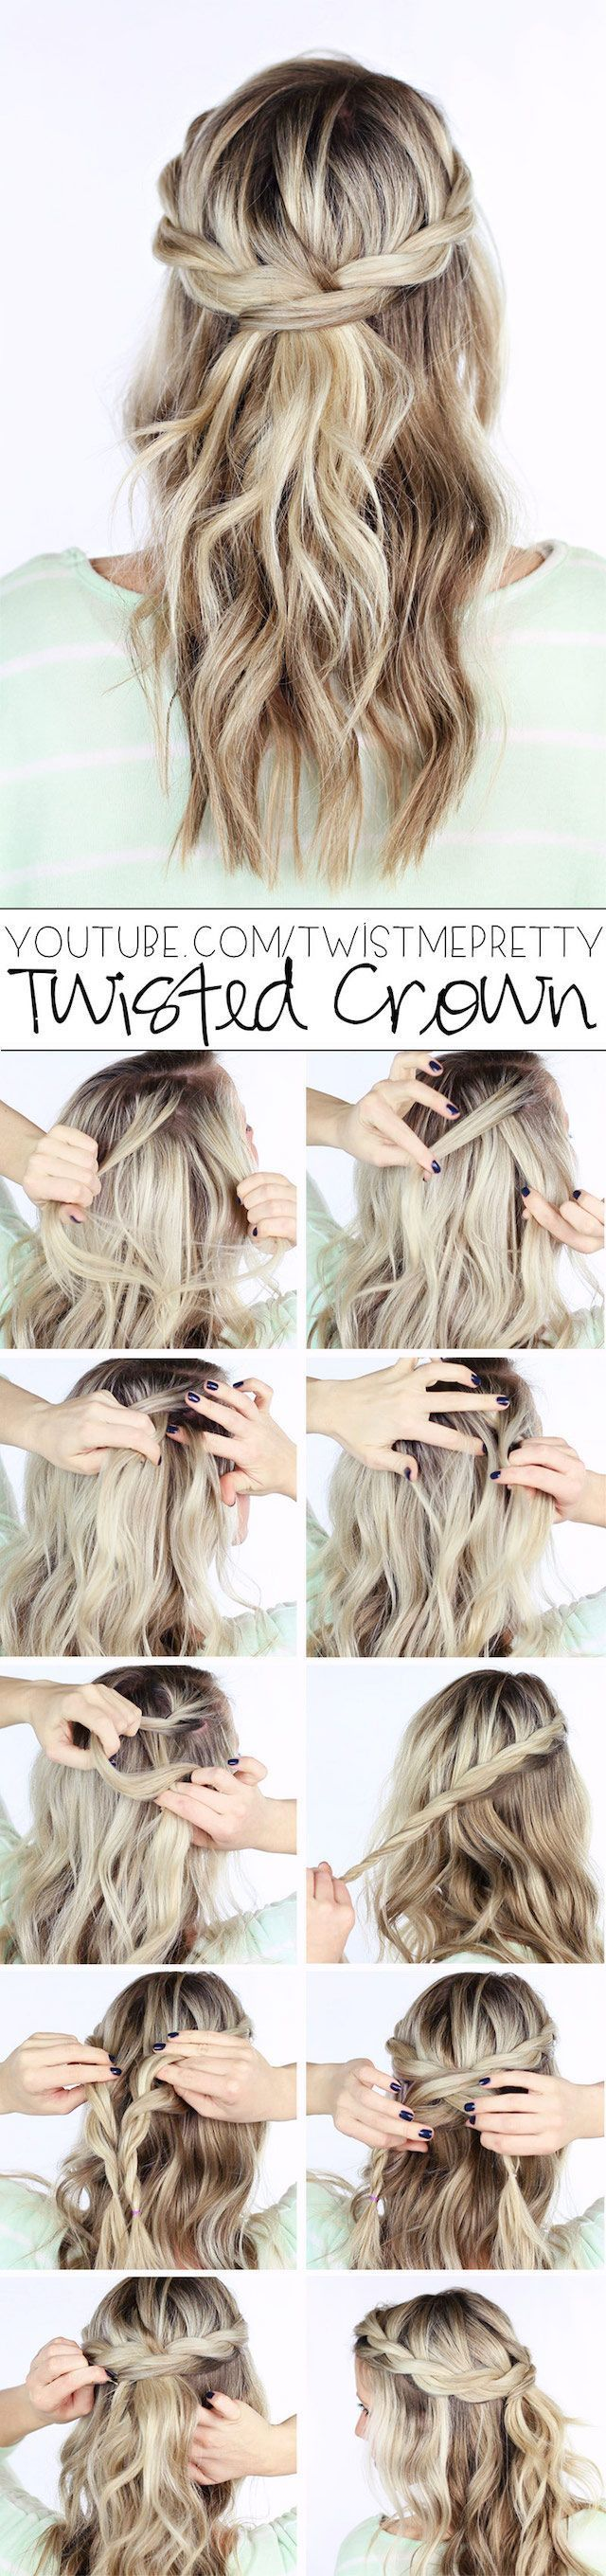 How to do a Twisted Crown Braid